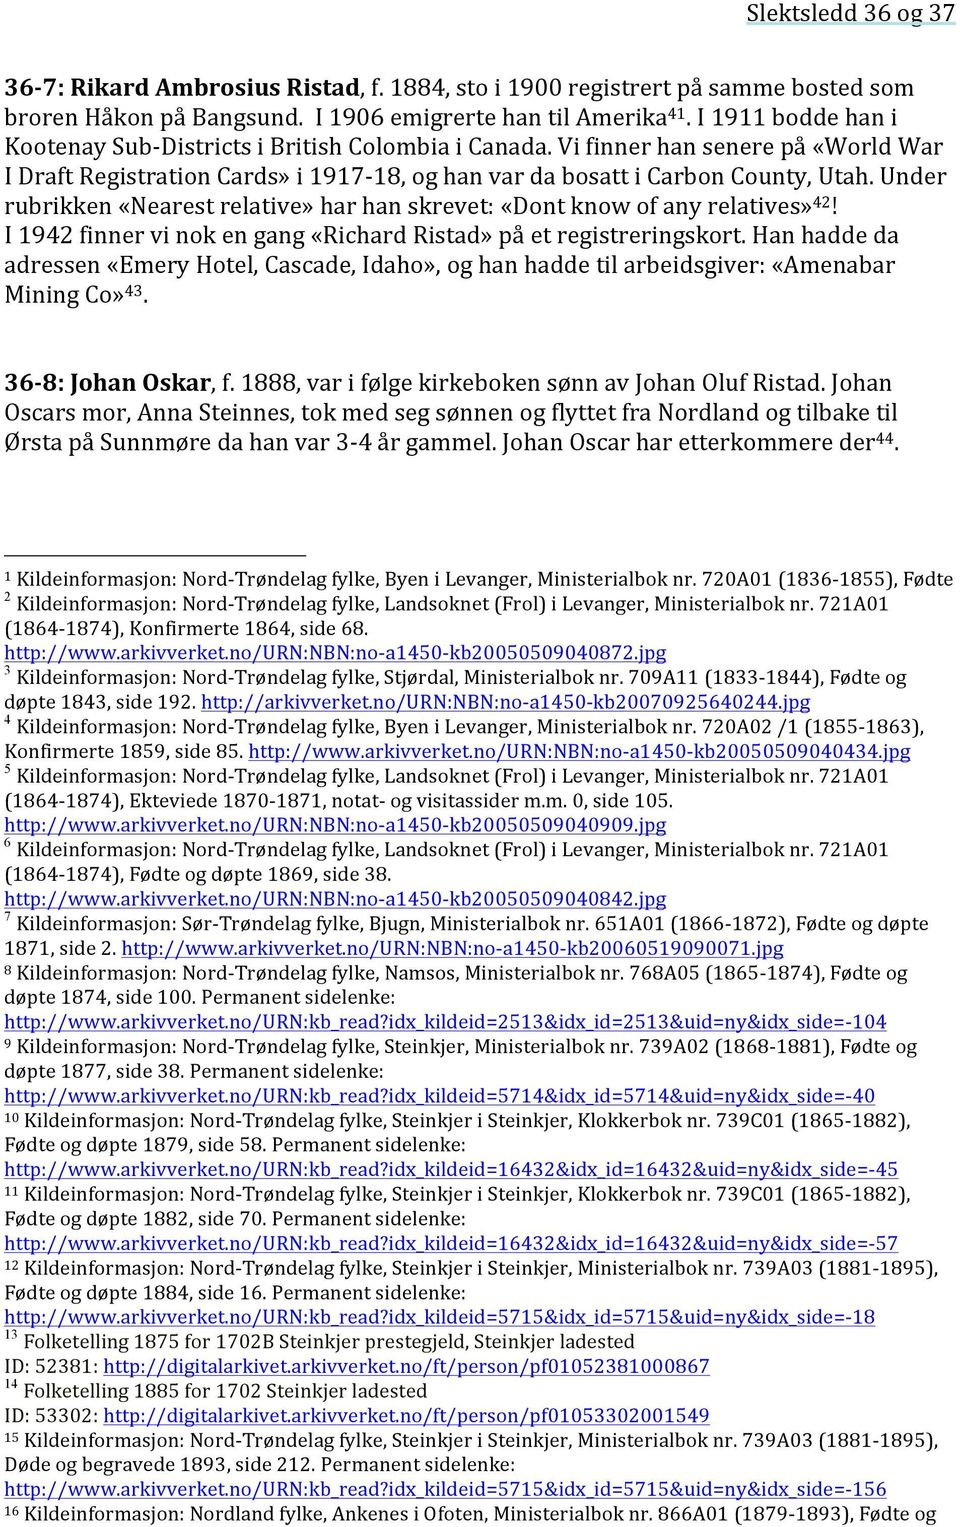 Under rubrikken «Nearest relative» har han skrevet: «Dont know of any relatives» 42! I 1942 finner vi nok en gang «Richard Ristad» på et registreringskort.